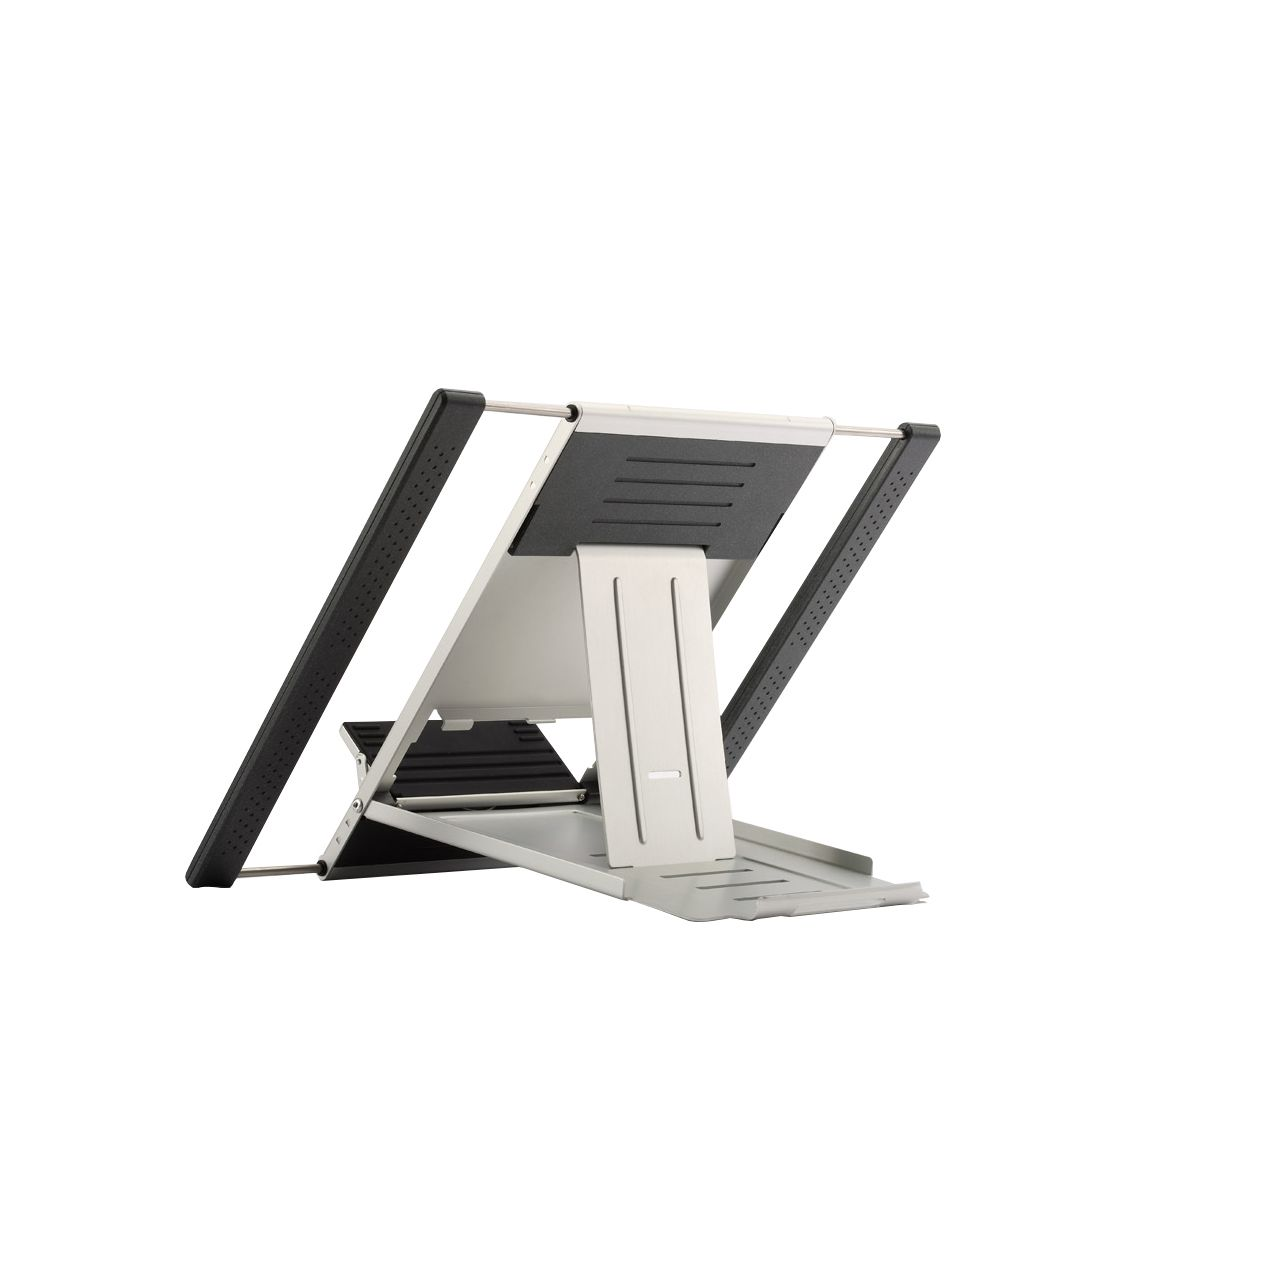 ergostar laptopstand flexible laptophouder ERKASC01 Schuinachter